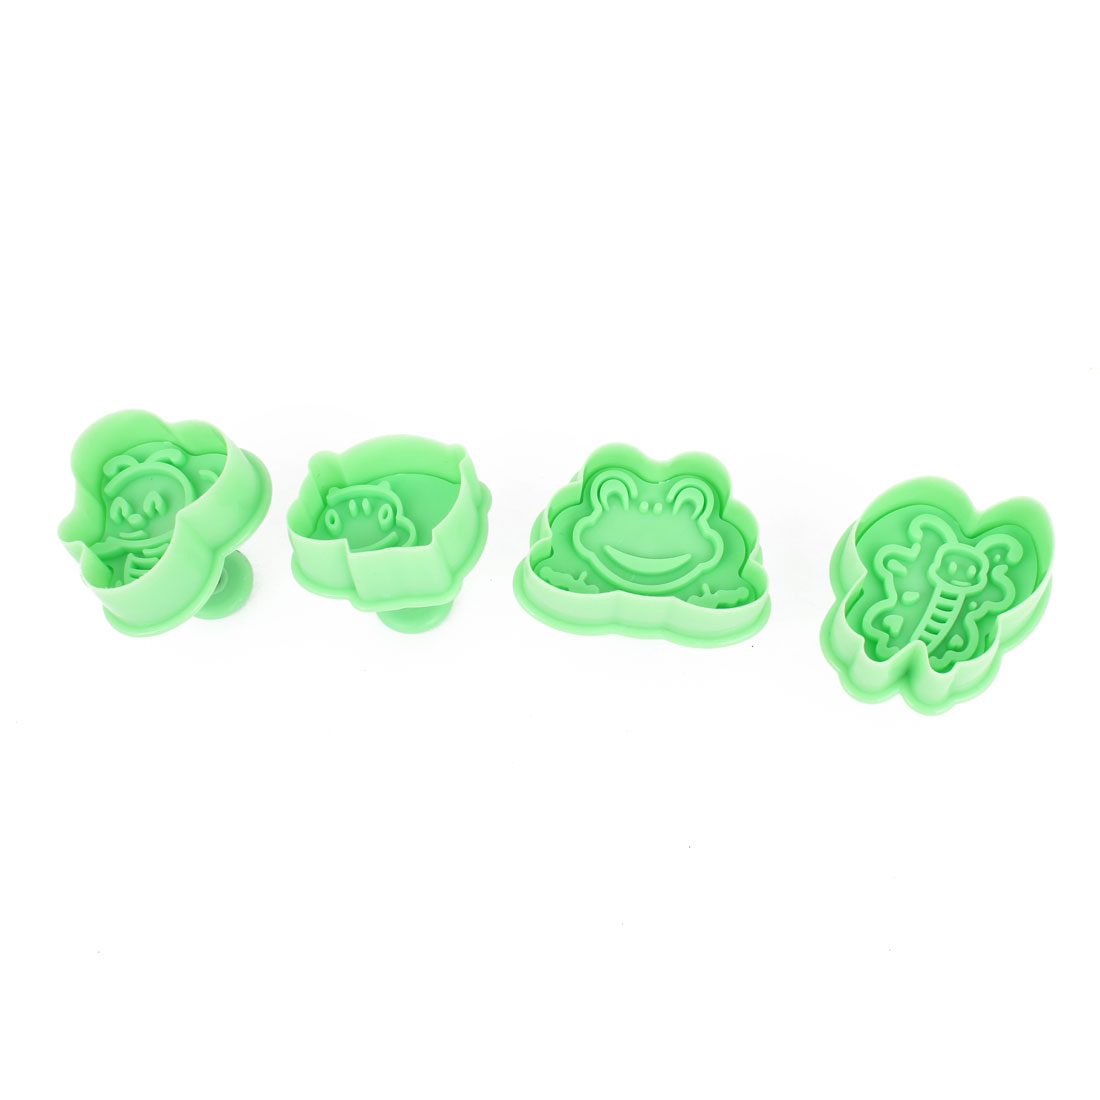 Green Bee Frog Design Cake Sugarcraft Mold Plunger Stamping Cutter Tool 4 Pcs